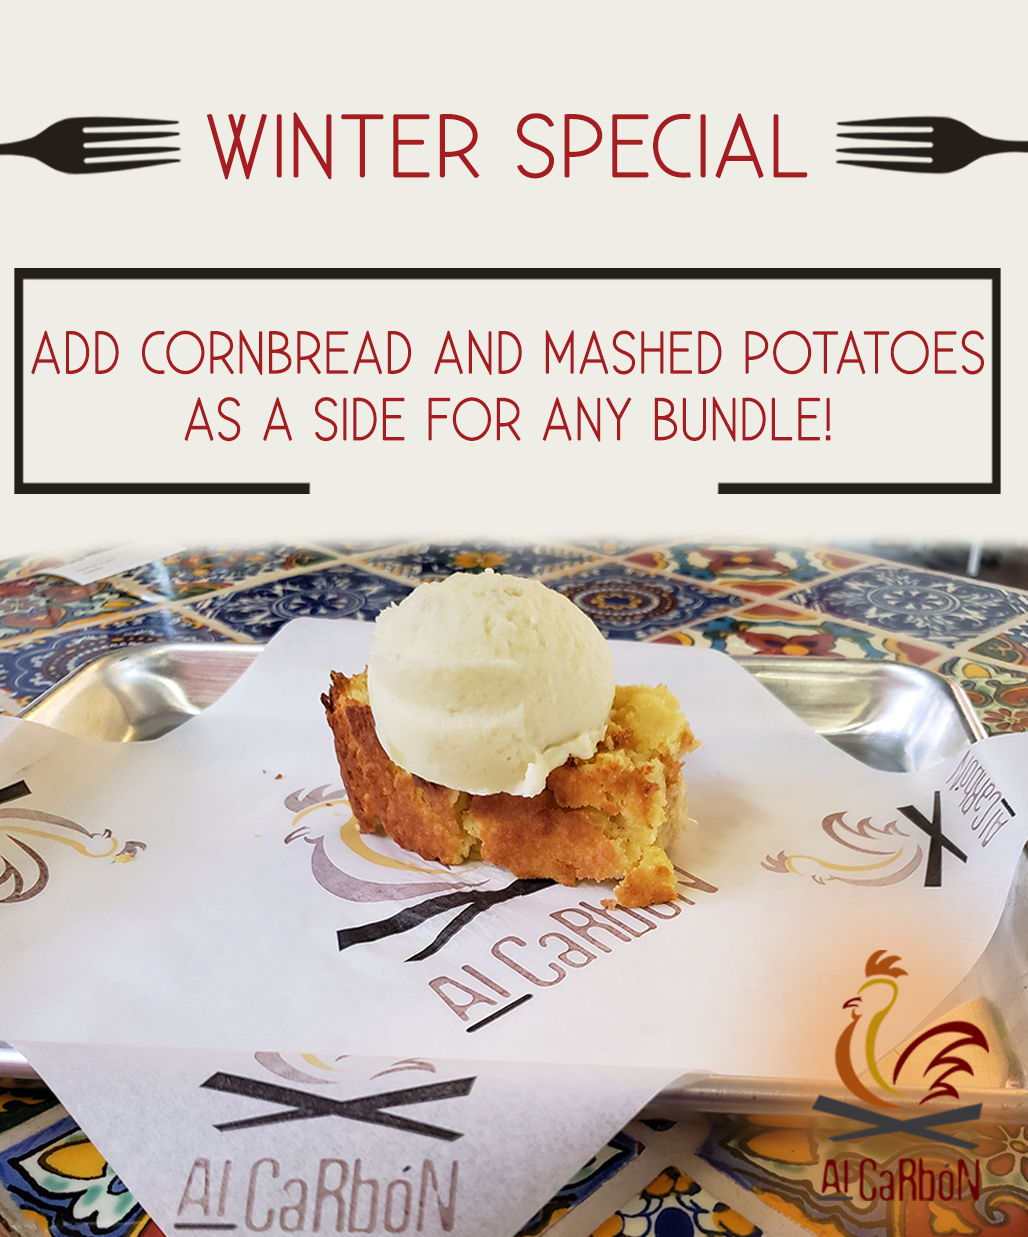 Winter Special - Add Cornbread and Mashed Potatoes as a Side for Any Bundle!